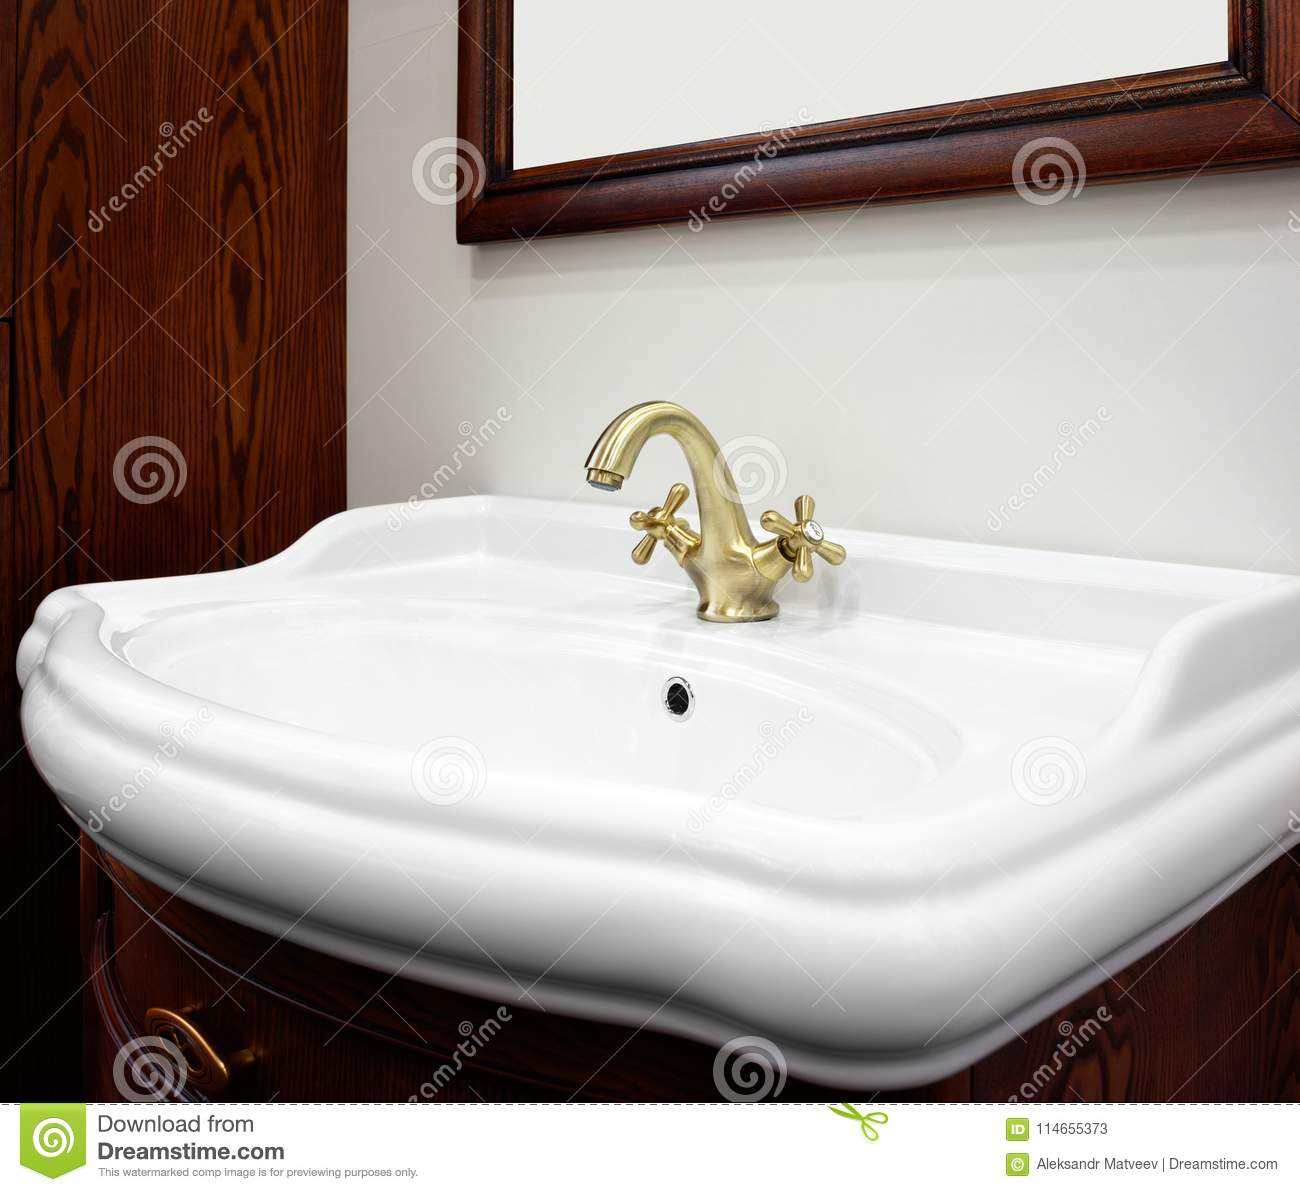 Download Bathroom Luxury Classic Redwood Interior With White Sink And  Classic Retro Style Bronze Faucet Stock